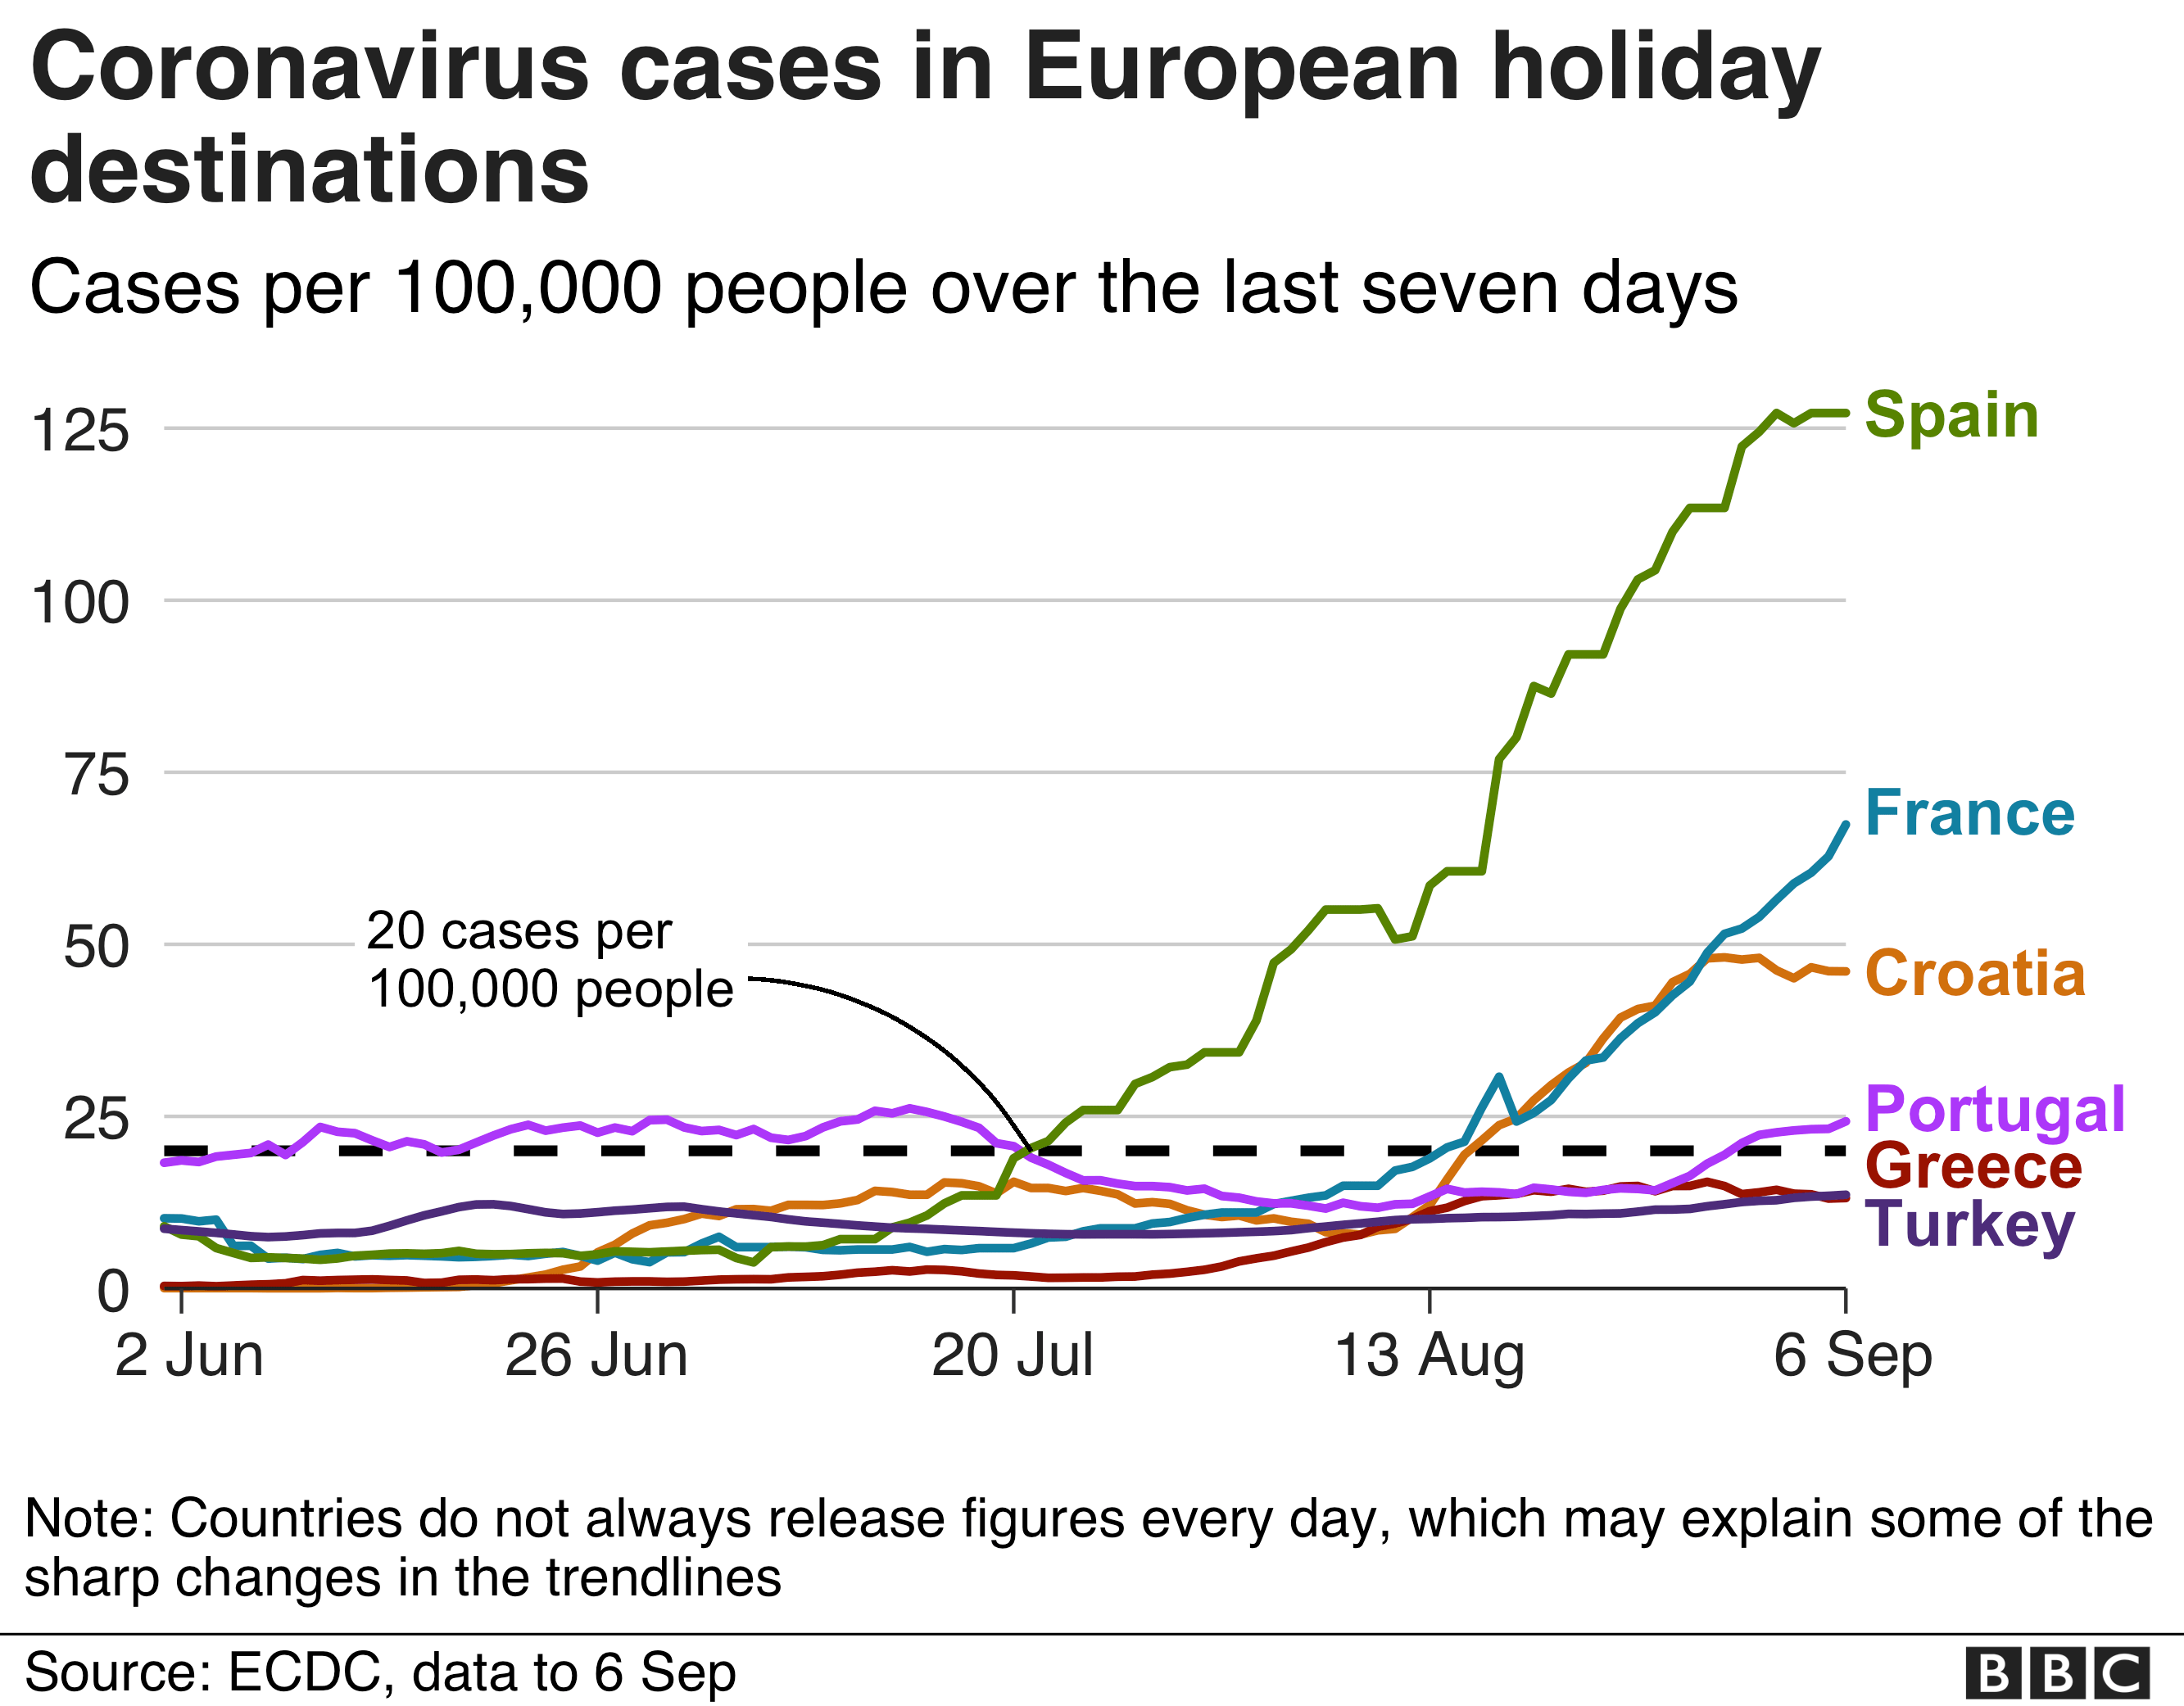 UK travel restrictions: Are Greece or Portugal on the quarantine list? thumbnail